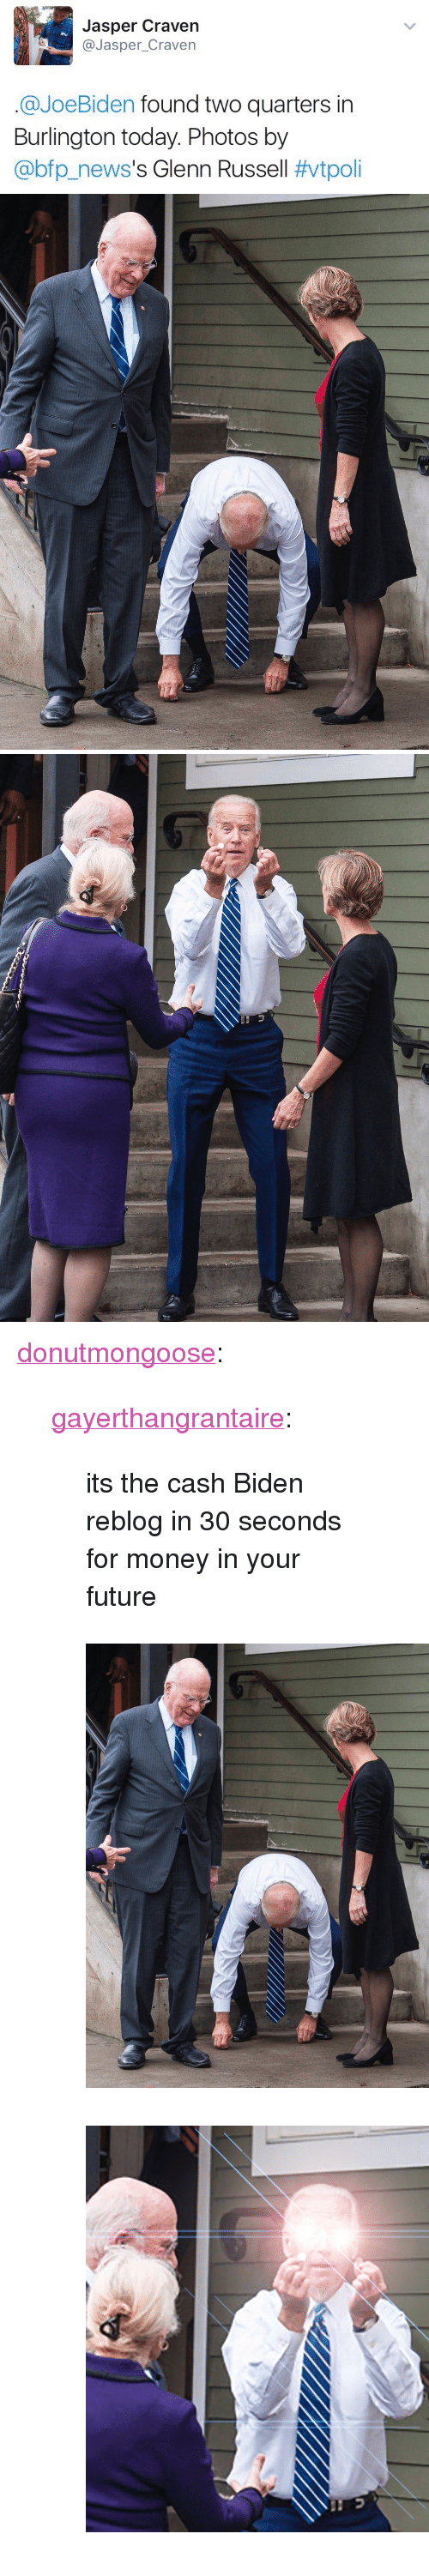 "Future, Money, and Tumblr: Jasper Craven  @Jasper_Craven  @JoeBiden found two quarters in  Burlington today. Photos by  @bp.news's Glenn Russell <p><a href=""http://donutmongoose.tumblr.com/post/155448667420/gayerthangrantaire-its-the-cash-biden-reblog-in"" class=""tumblr_blog"">donutmongoose</a>:</p> <blockquote> <p><a href=""http://gayerthangrantaire.tumblr.com/post/153355558604"" class=""tumblr_blog"">gayerthangrantaire</a>:</p> <blockquote><p>its the cash Biden reblog in 30 seconds for money in your future</p></blockquote> <figure class=""tmblr-full"" data-orig-height=""518"" data-orig-width=""400"" data-orig-src=""https://78.media.tumblr.com/8aa641e925cfb780f4858fe3558ec4c3/tumblr_inline_ojbqh7avc41u0ah77_540.jpg""><img src=""https://78.media.tumblr.com/8aa641e925cfb780f4858fe3558ec4c3/tumblr_inline_olyca9nHM71r0rcm1_540.jpg"" data-orig-height=""518"" data-orig-width=""400"" data-orig-src=""https://78.media.tumblr.com/8aa641e925cfb780f4858fe3558ec4c3/tumblr_inline_ojbqh7avc41u0ah77_540.jpg""/></figure><figure class=""tmblr-full"" data-orig-height=""474"" data-orig-width=""540"" data-orig-src=""https://78.media.tumblr.com/52723c80a12821bad3c859b0d637d474/tumblr_inline_ojbqhcRPpY1u0ah77_540.png""><img src=""https://78.media.tumblr.com/e91c0e9f1fbe8e8a0444ca41a4df3715/tumblr_inline_olyca9EJTZ1r0rcm1_540.png"" data-orig-height=""474"" data-orig-width=""540"" data-orig-src=""https://78.media.tumblr.com/52723c80a12821bad3c859b0d637d474/tumblr_inline_ojbqhcRPpY1u0ah77_540.png""/></figure></blockquote>"